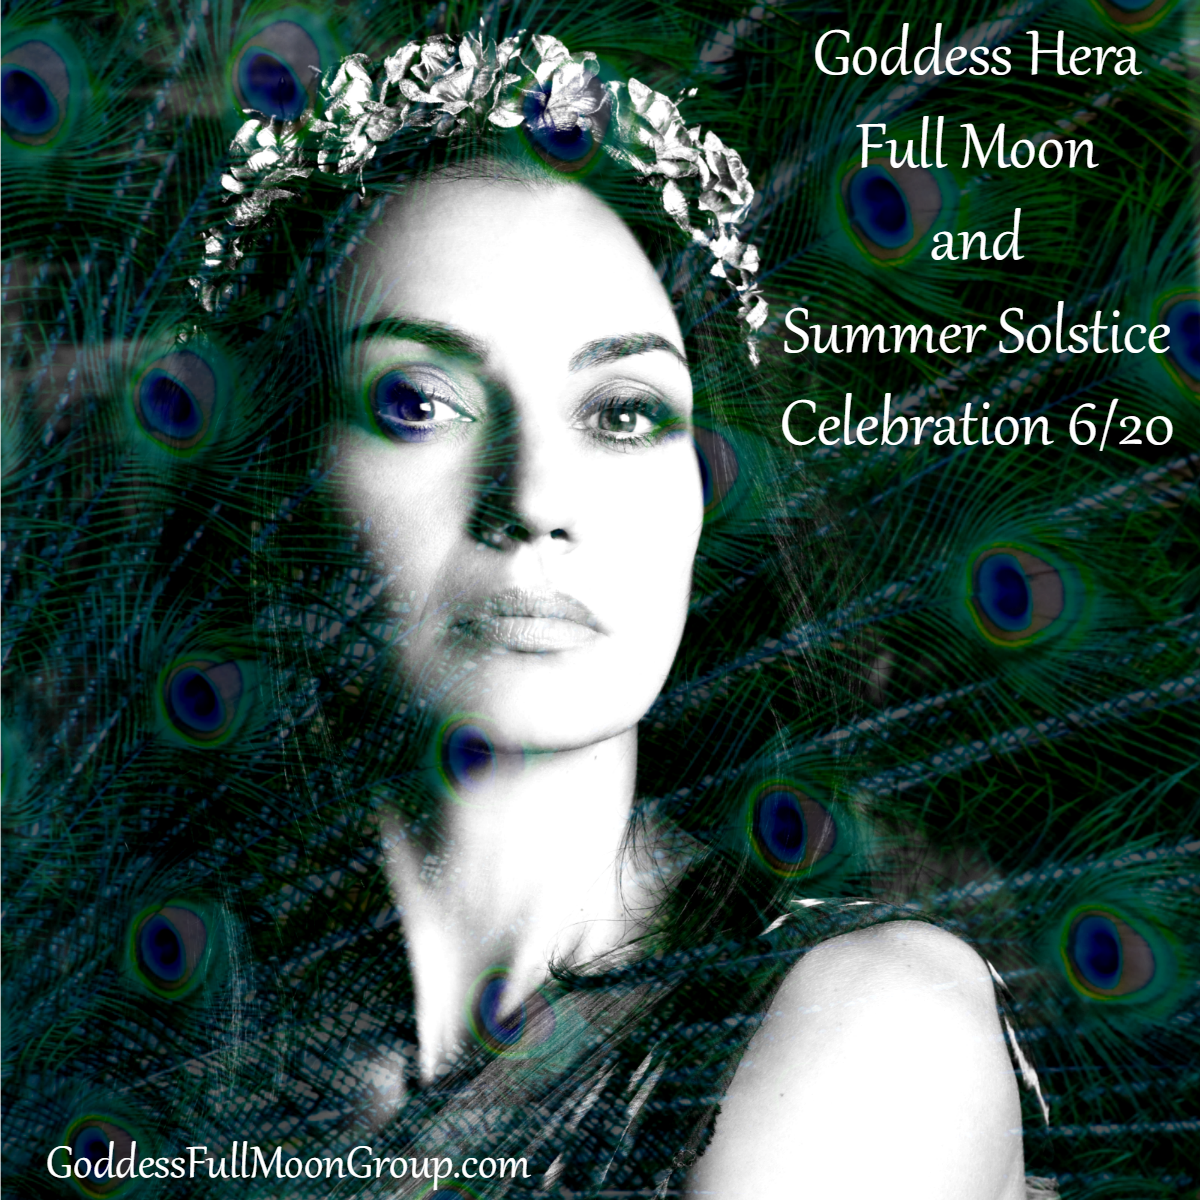 Goddess Full Moon Group Hera June Full Moon and Summer Solstice